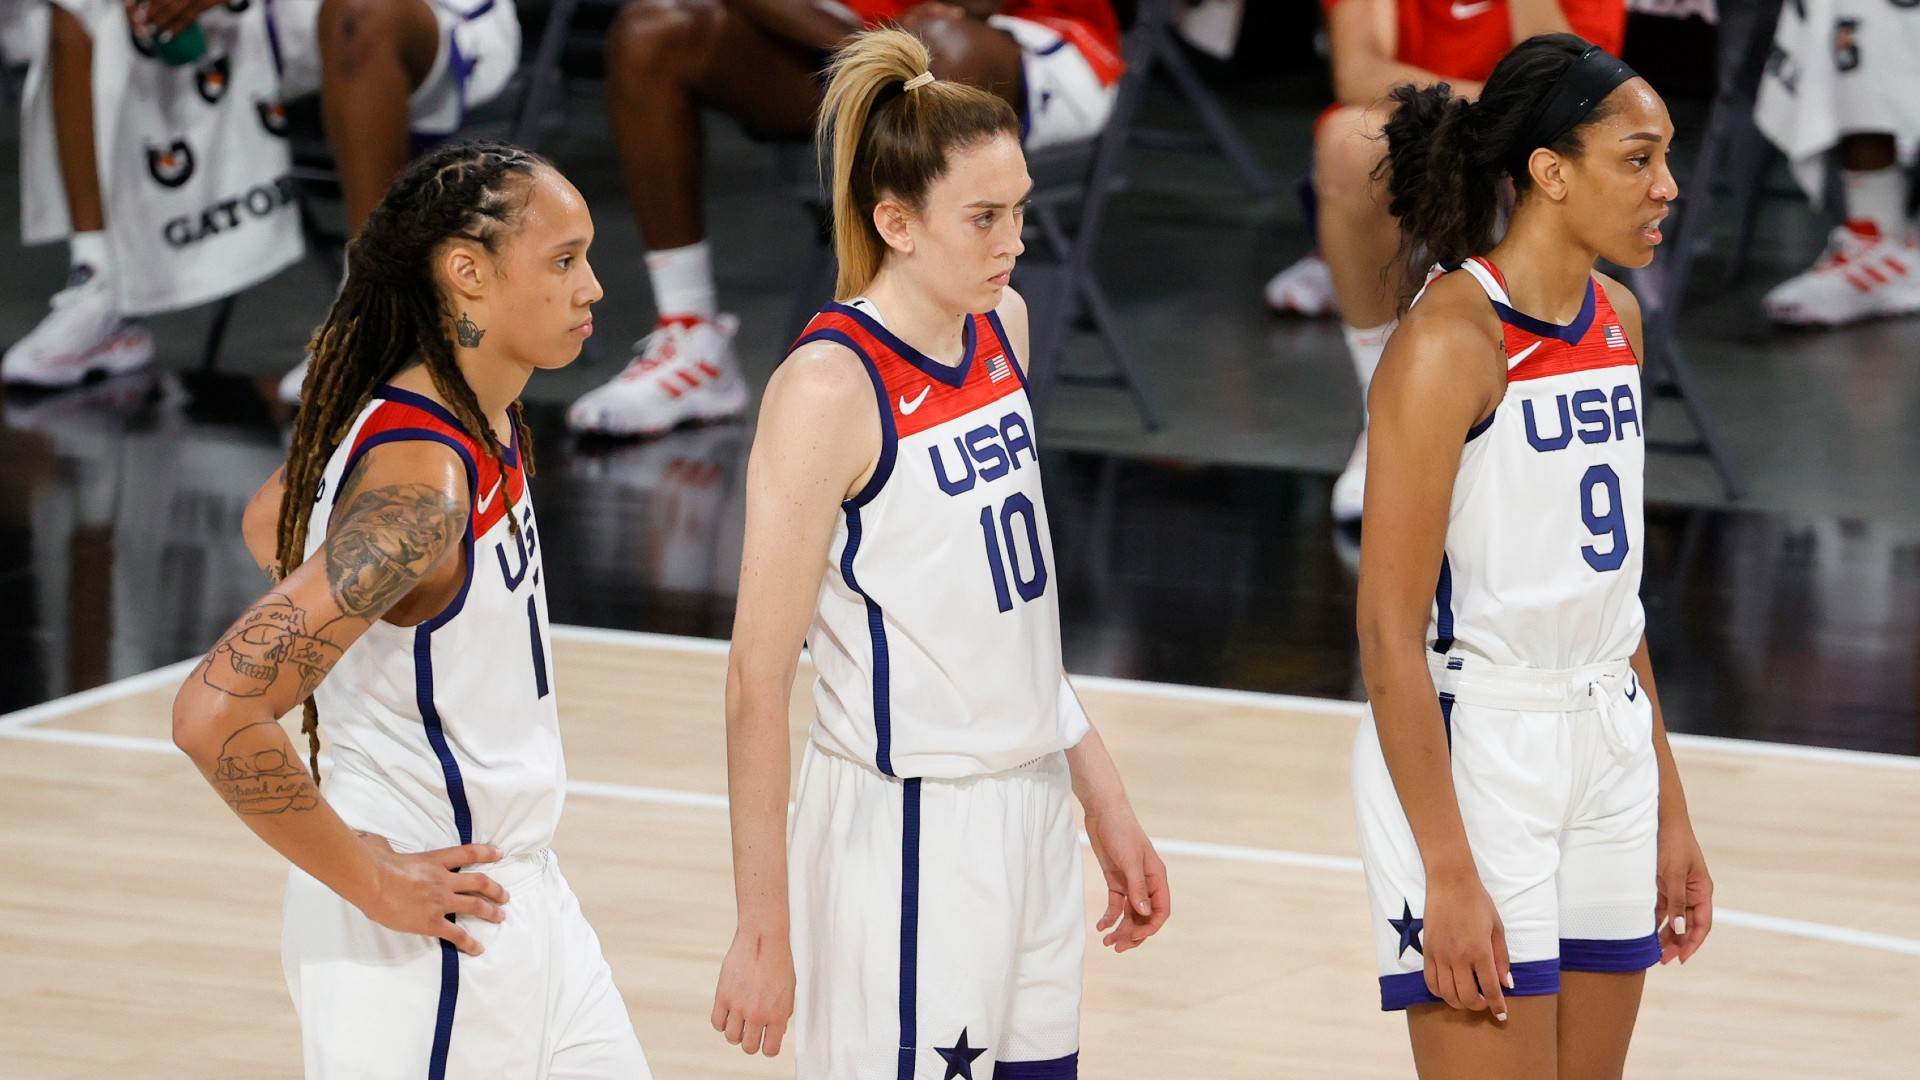 USA women's basketball Vs. Japan TV time, channel and schedule to watch the 2021 Olympic gold medal game